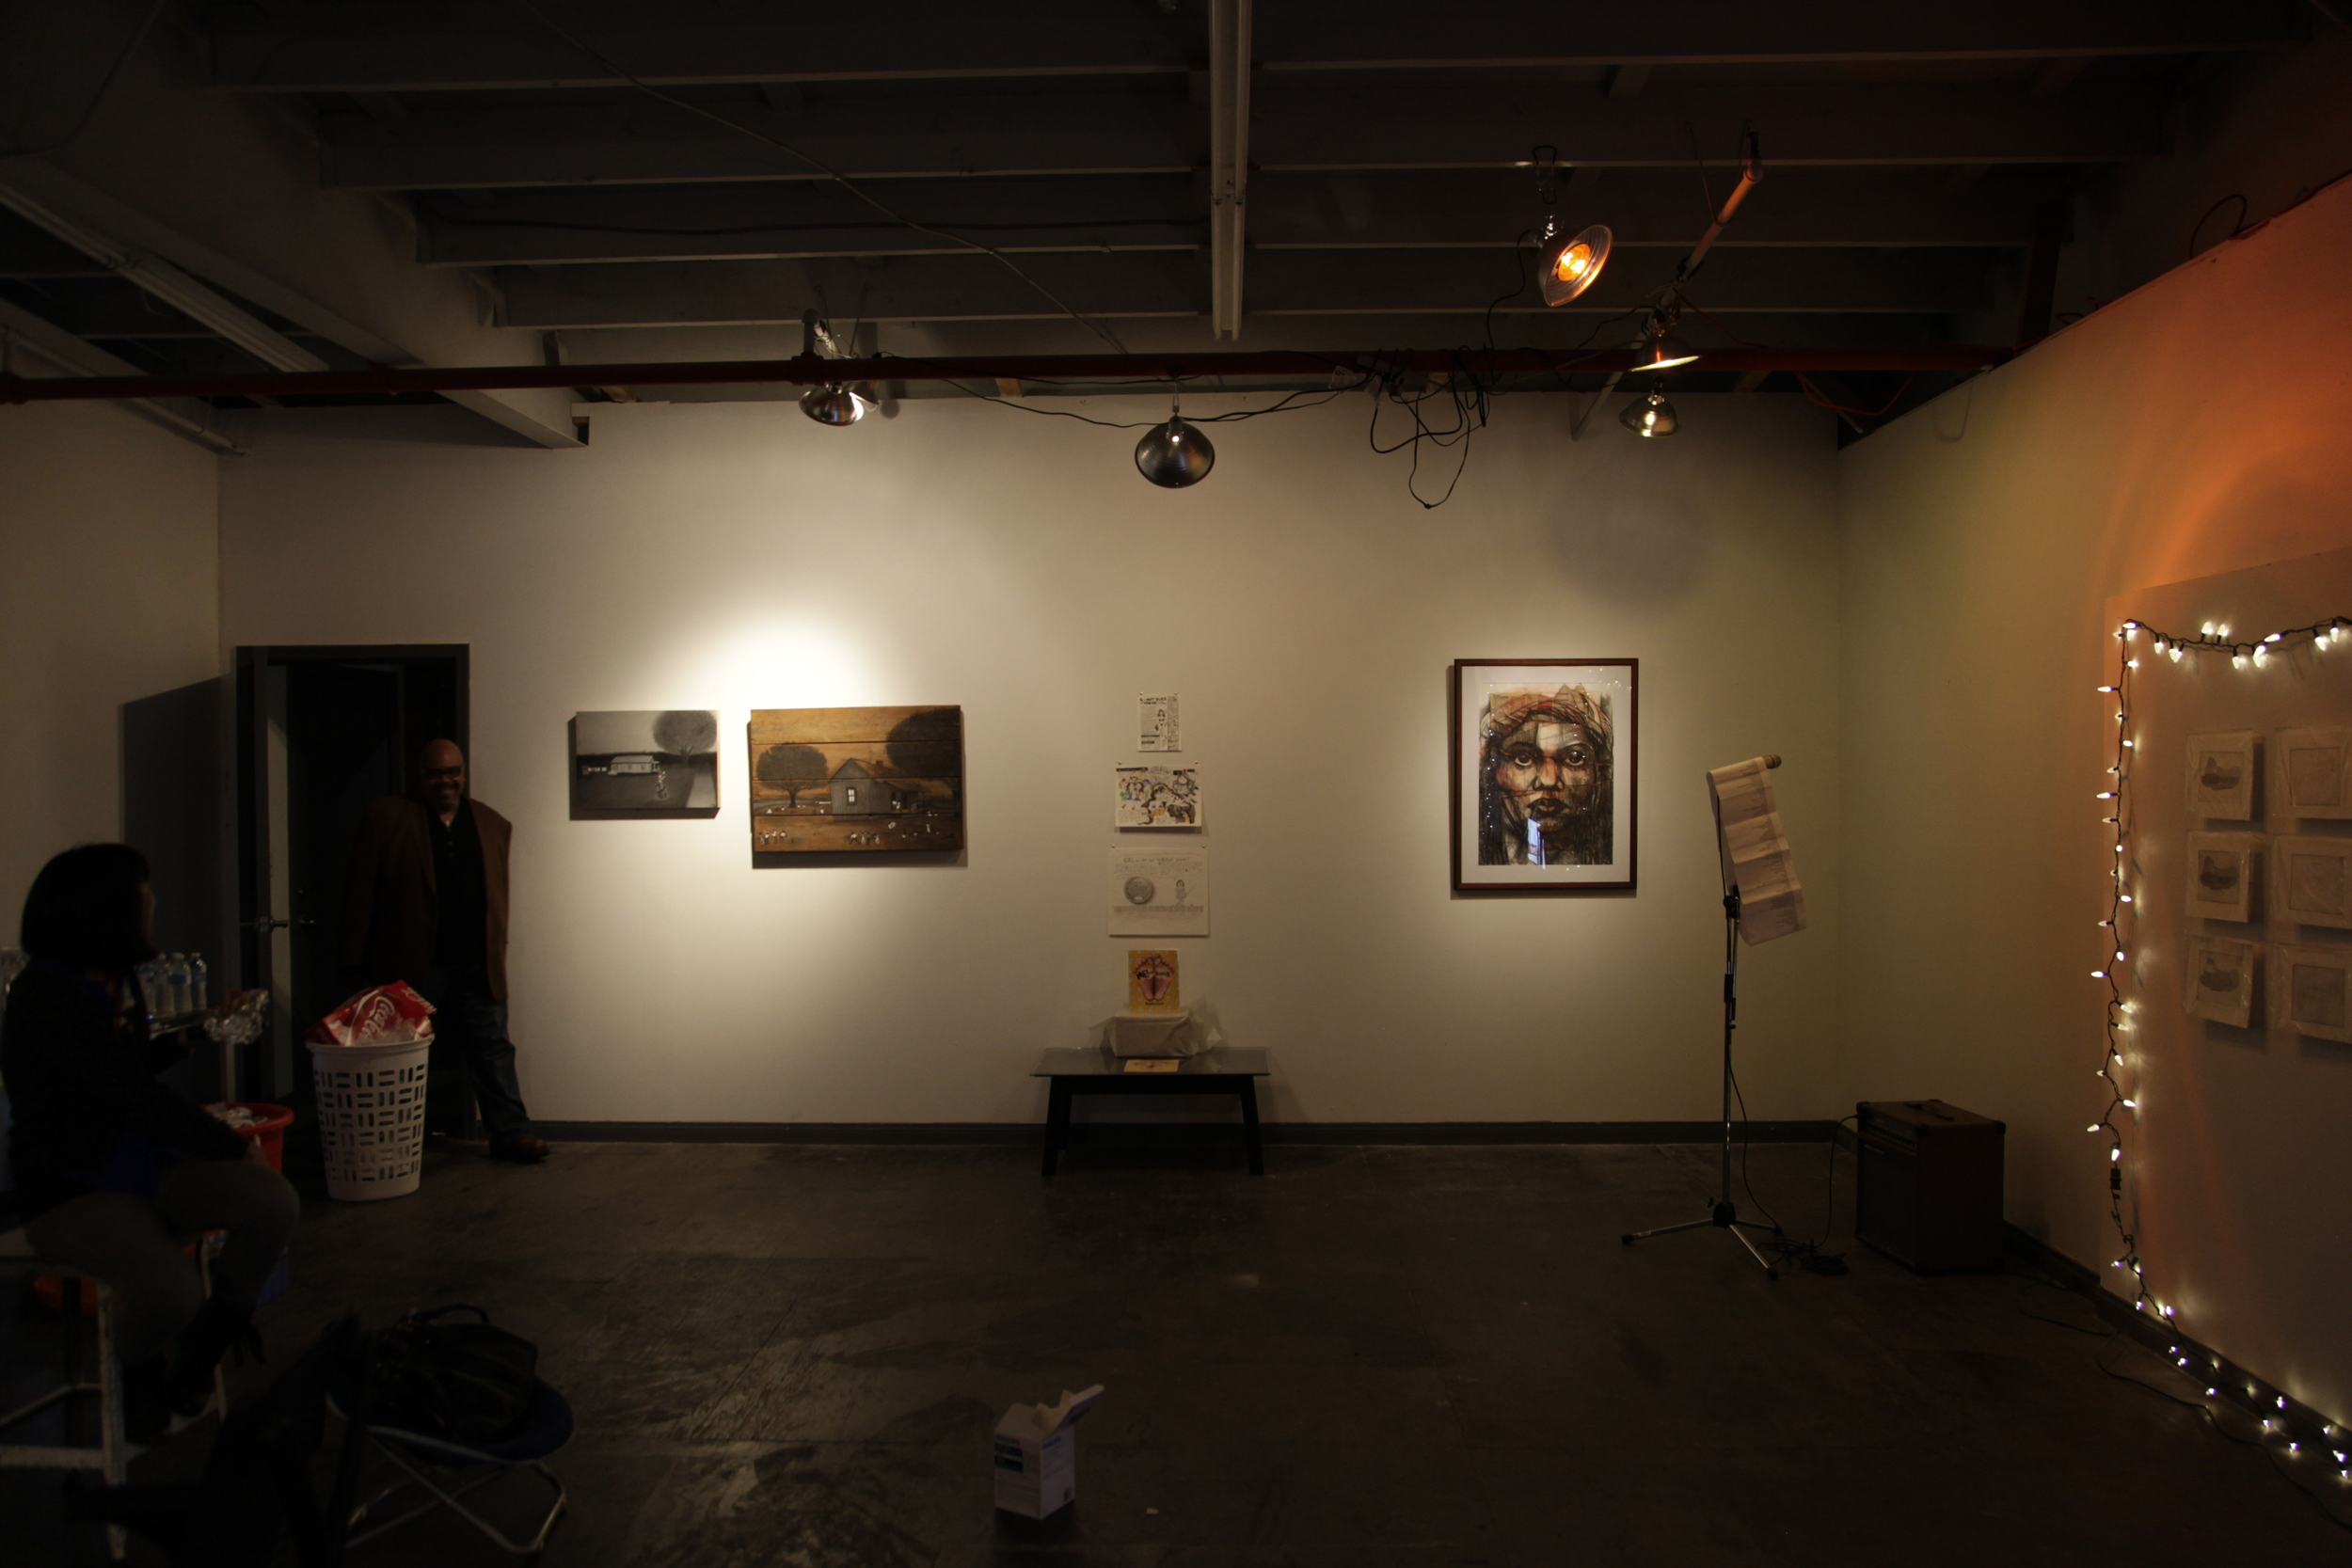 Installation View, from left to right,  Artists Victoria Tao, and Eric Myles.